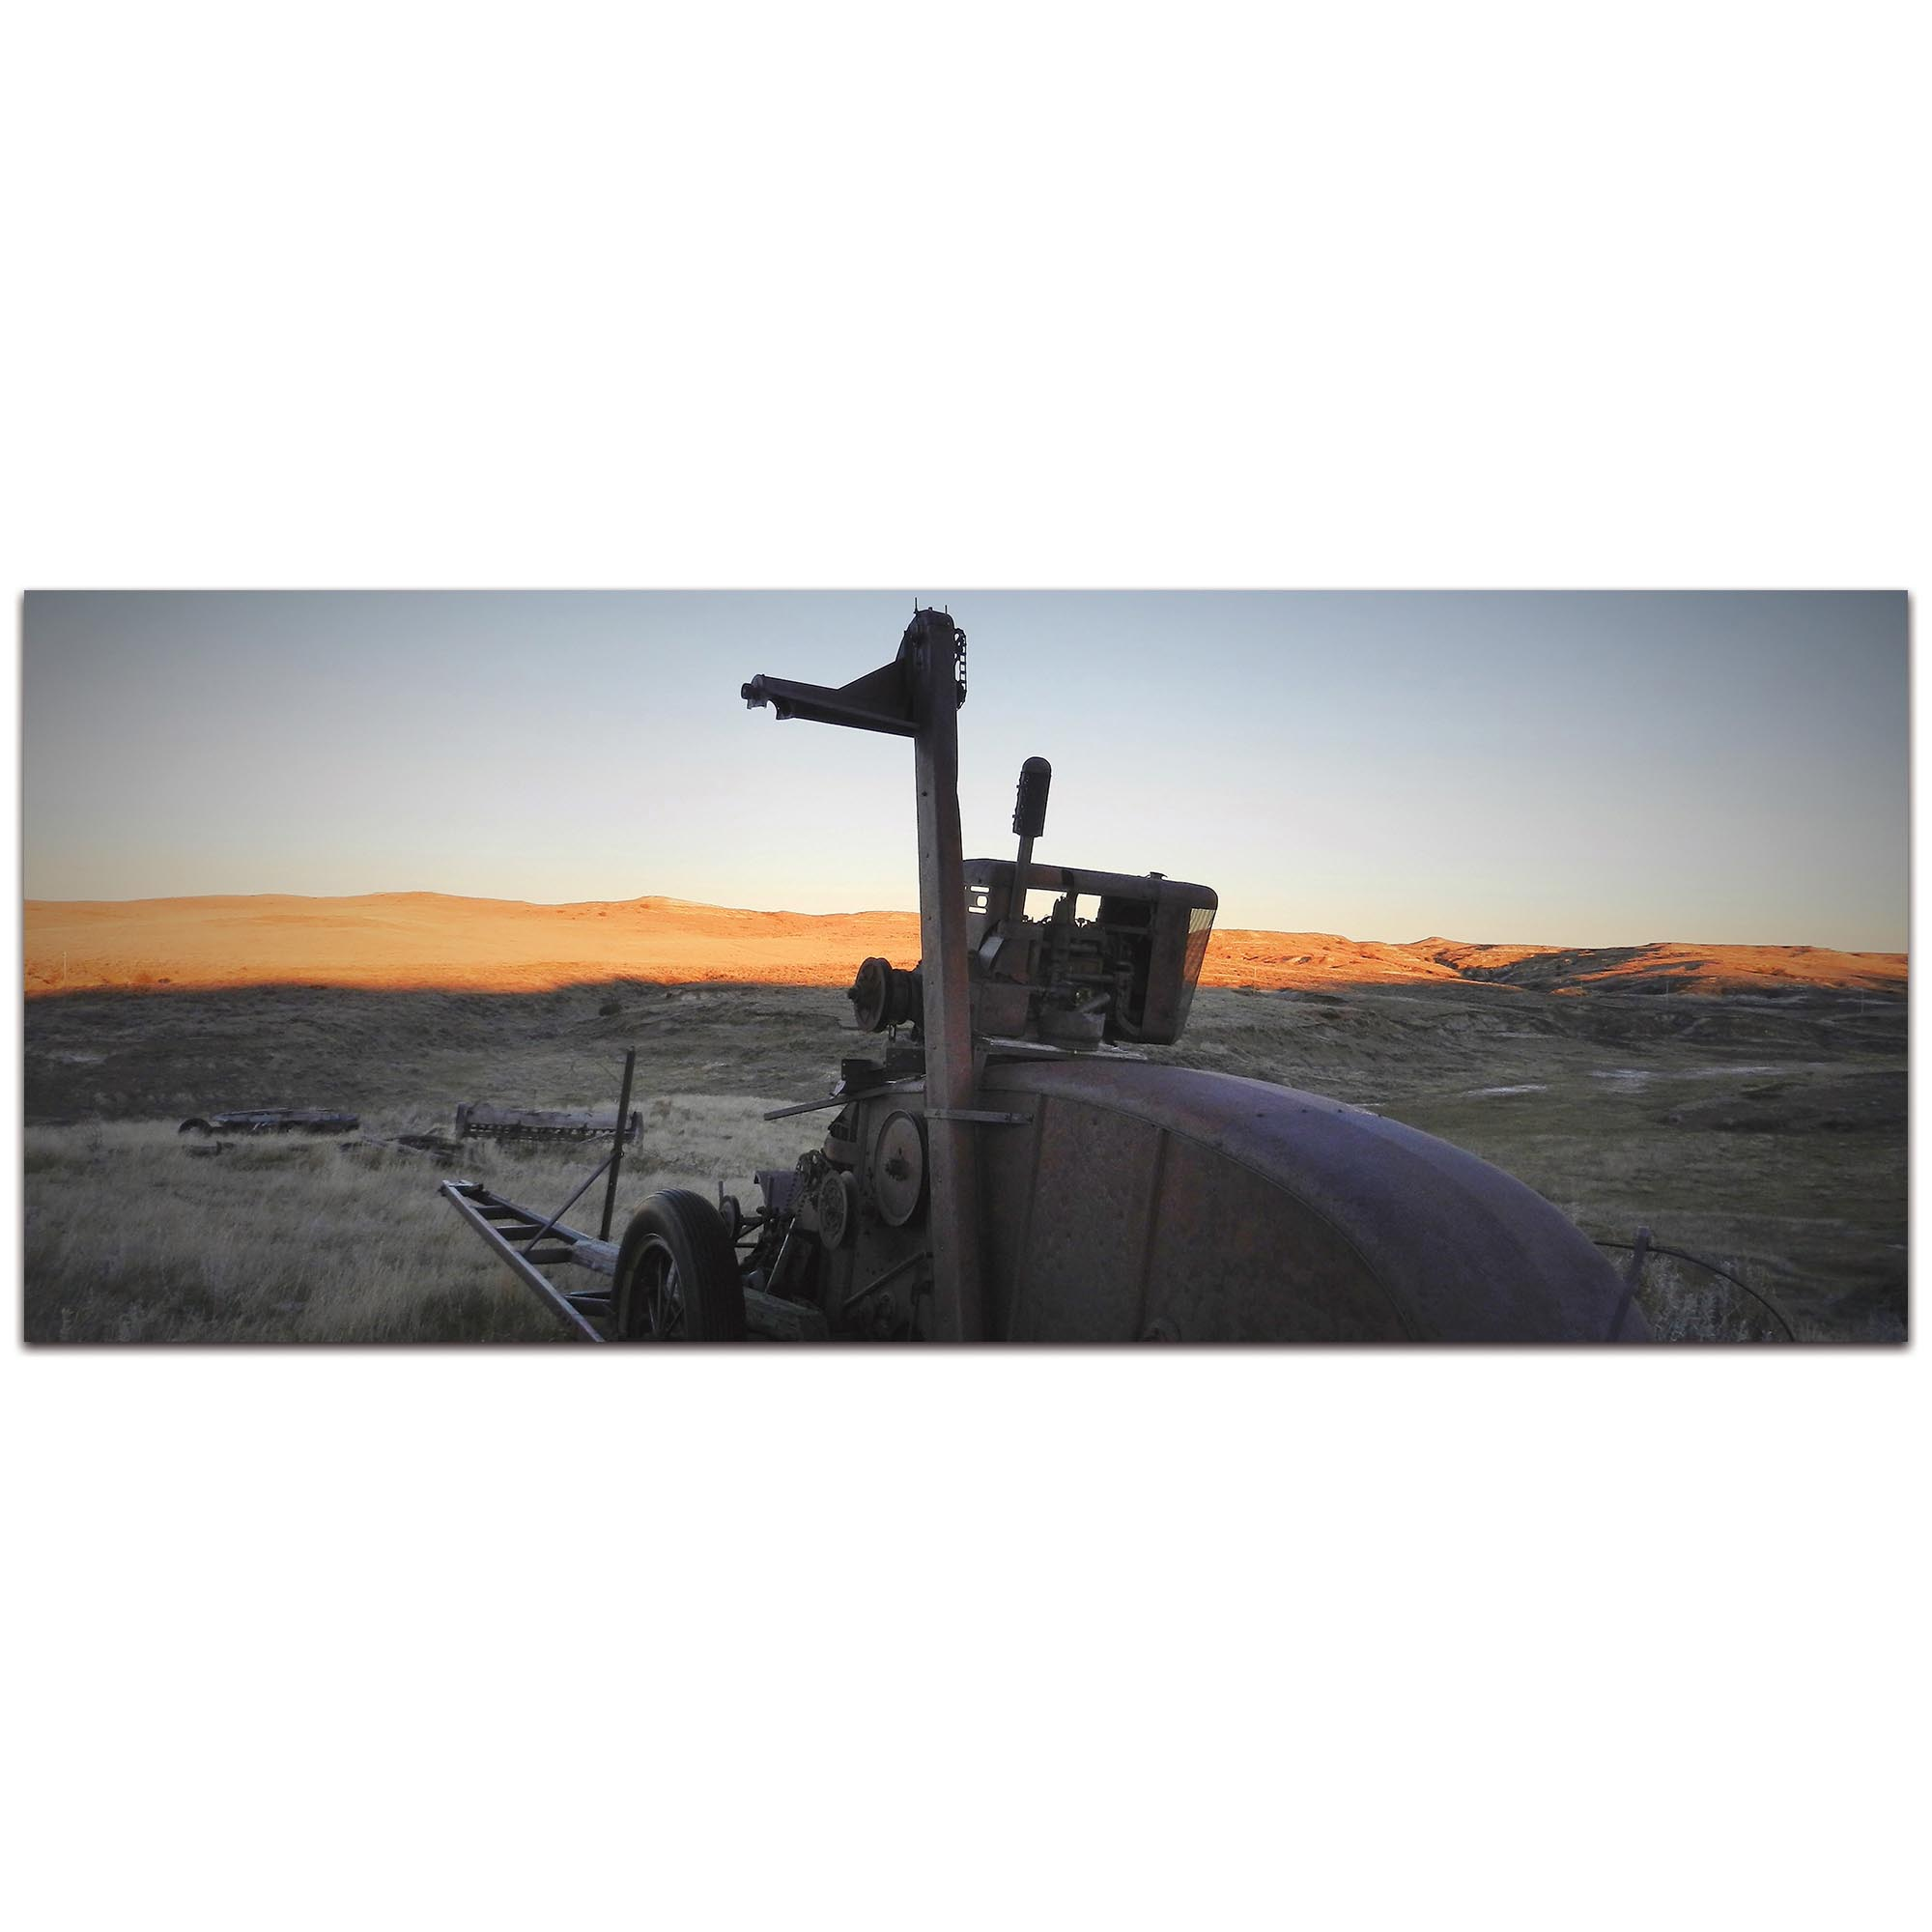 Western Wall Art 'Tractor Sunset' - American West Decor on Metal or Plexiglass